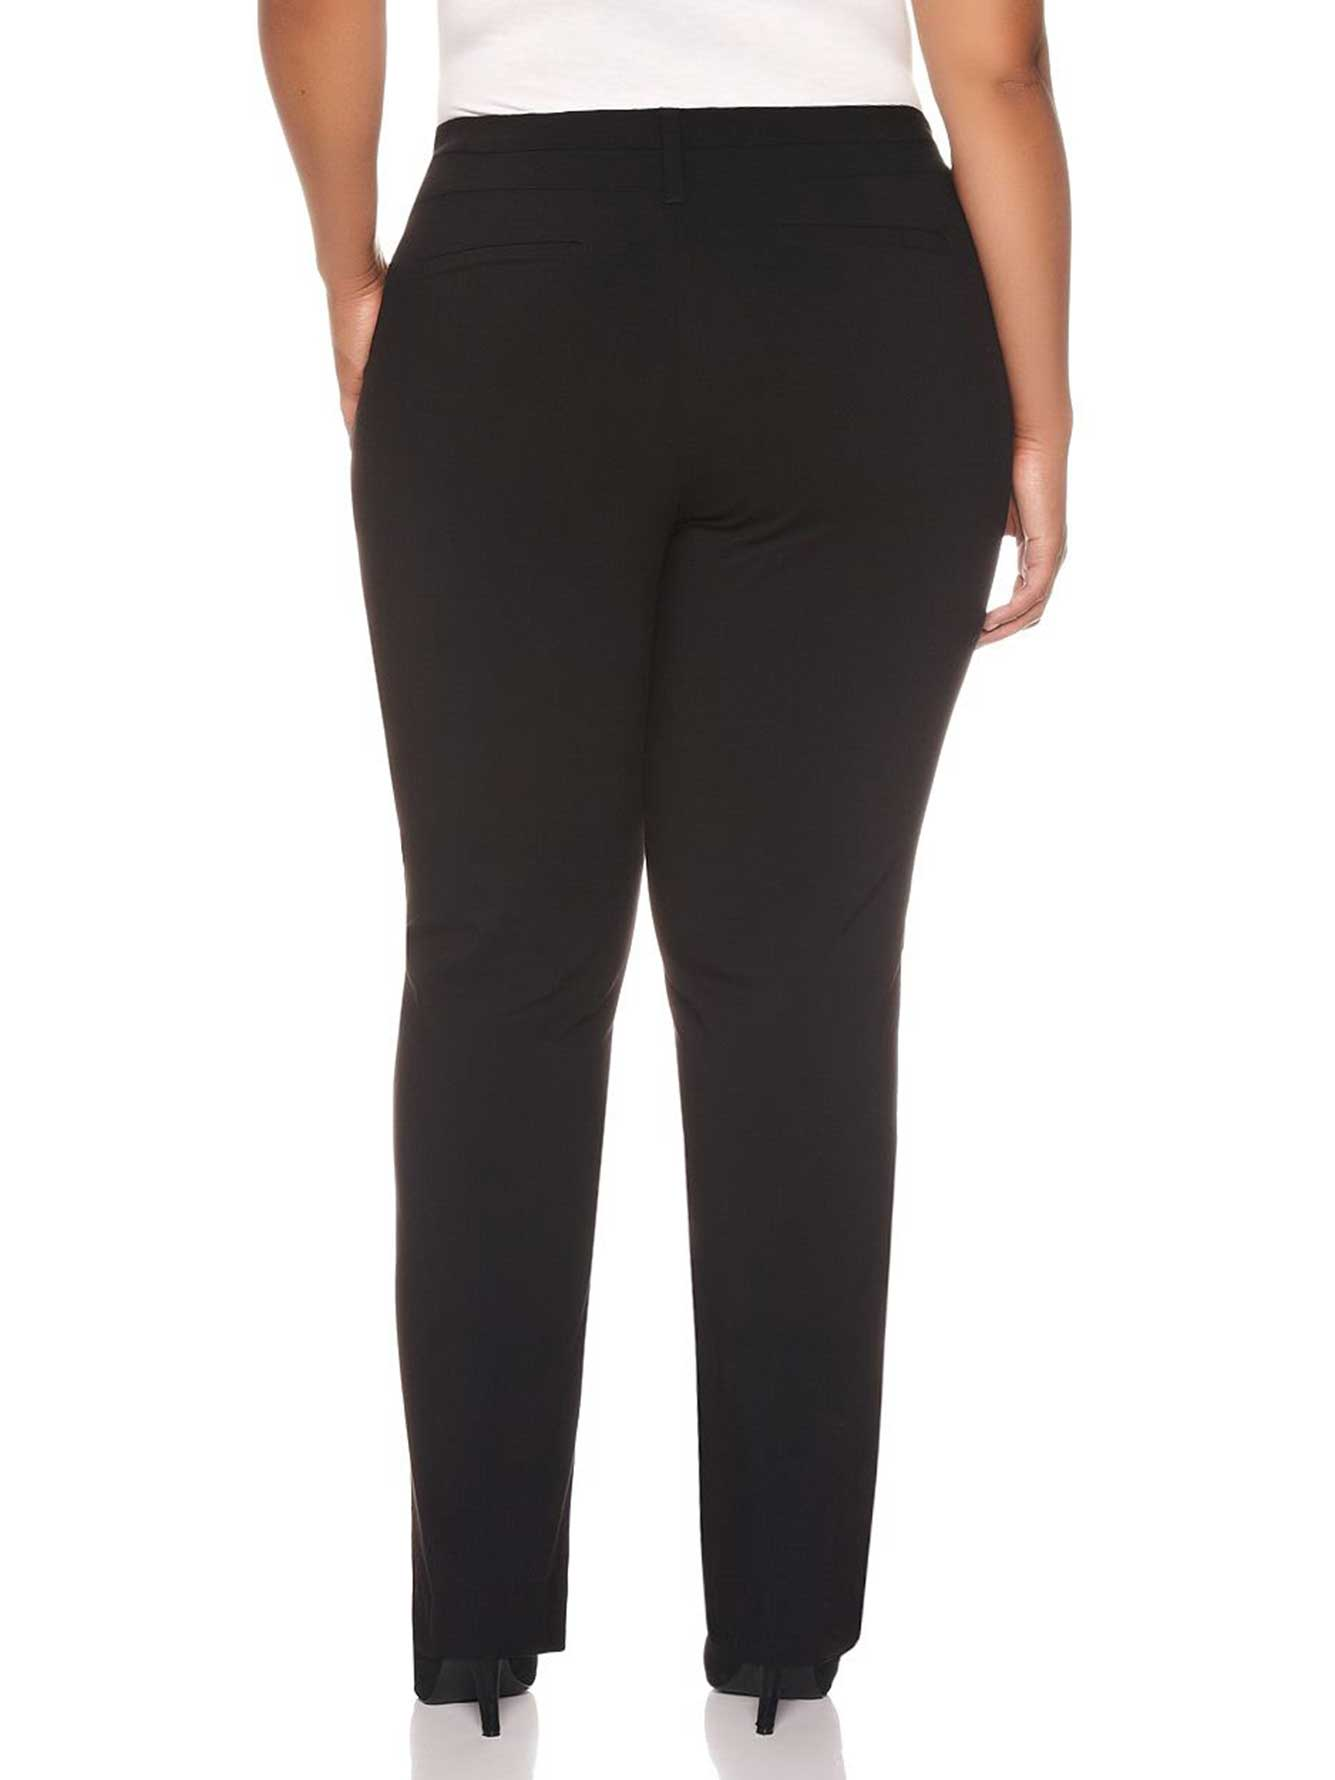 Find Petite from the Womens department at Debenhams. Shop a wide range of Trousers & leggings products and more at our online shop today.